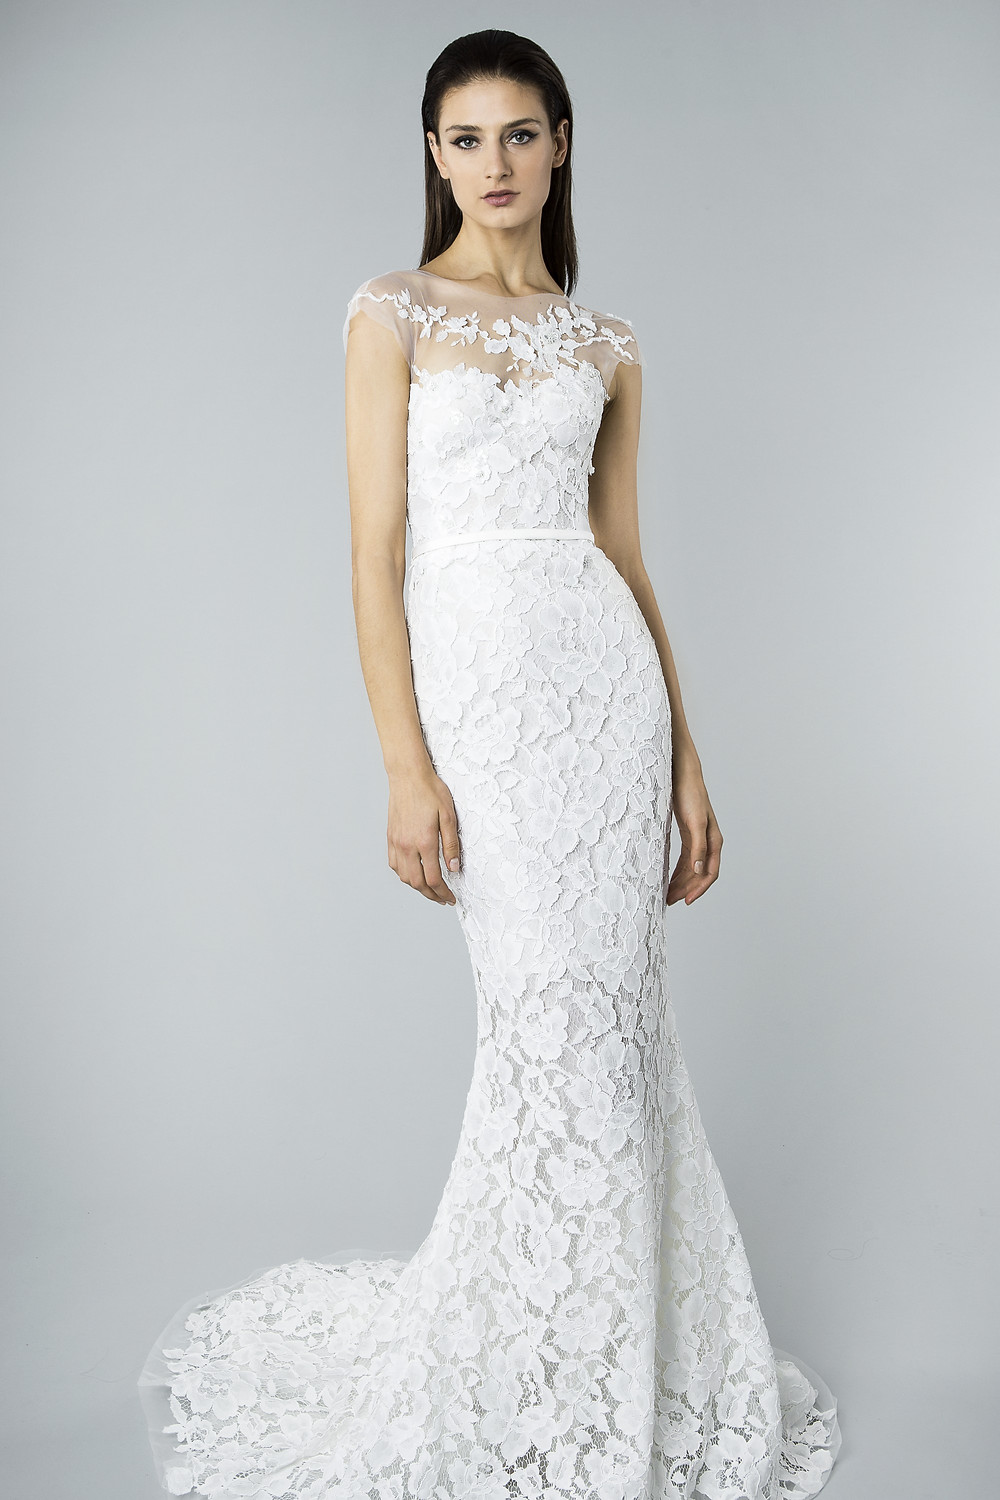 A Mira Zwillinger lace and mesh mermaid fit and flare wedding dress